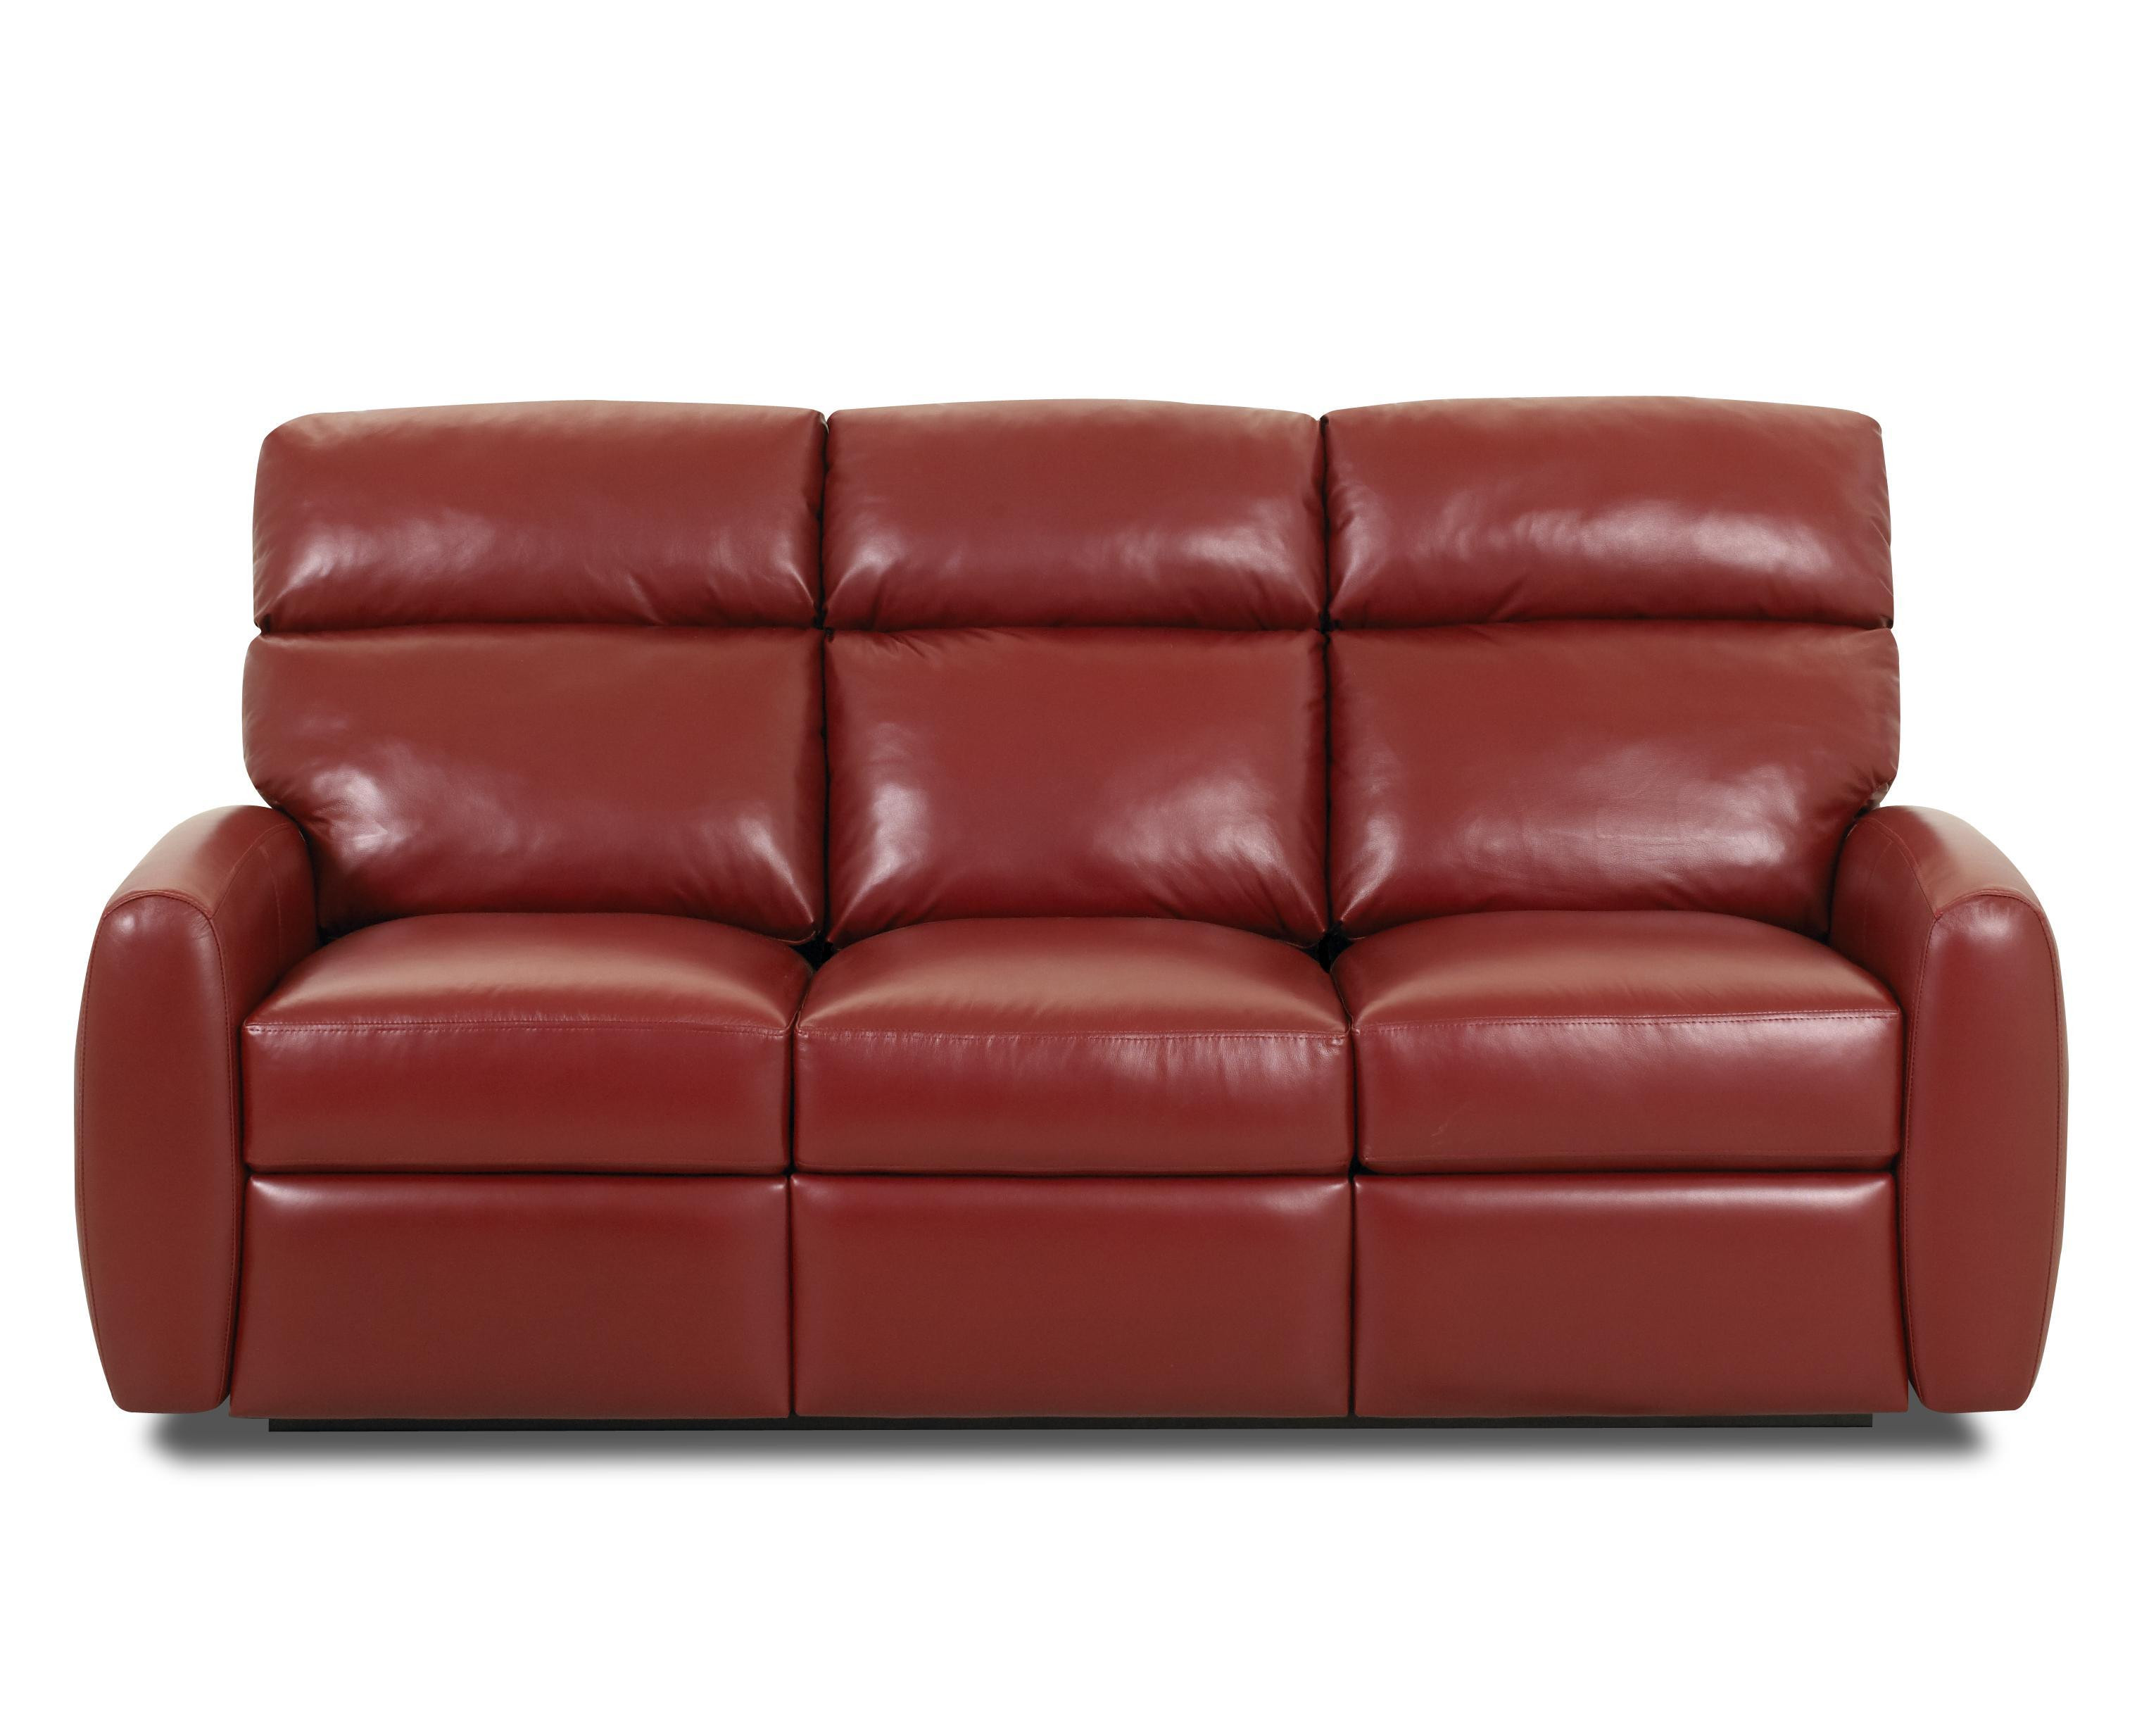 Best ideas about Red Recliner Sofa . Save or Pin fort Design Ventana Red Leather Recliner Sofa Now.